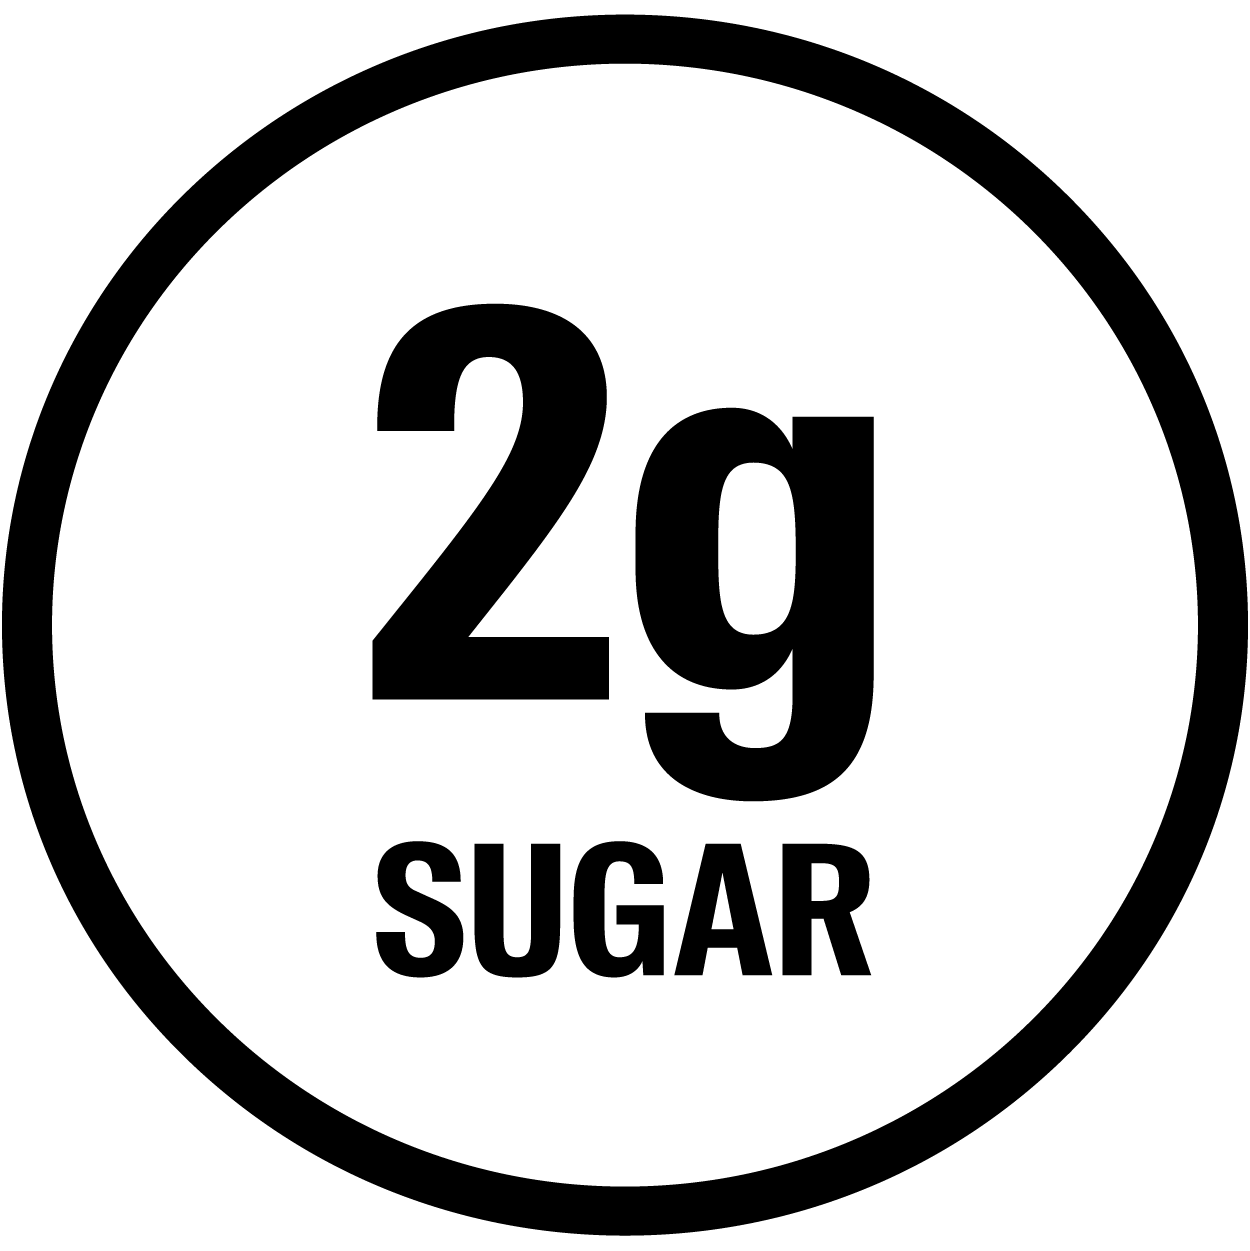 No Added Sugar icon